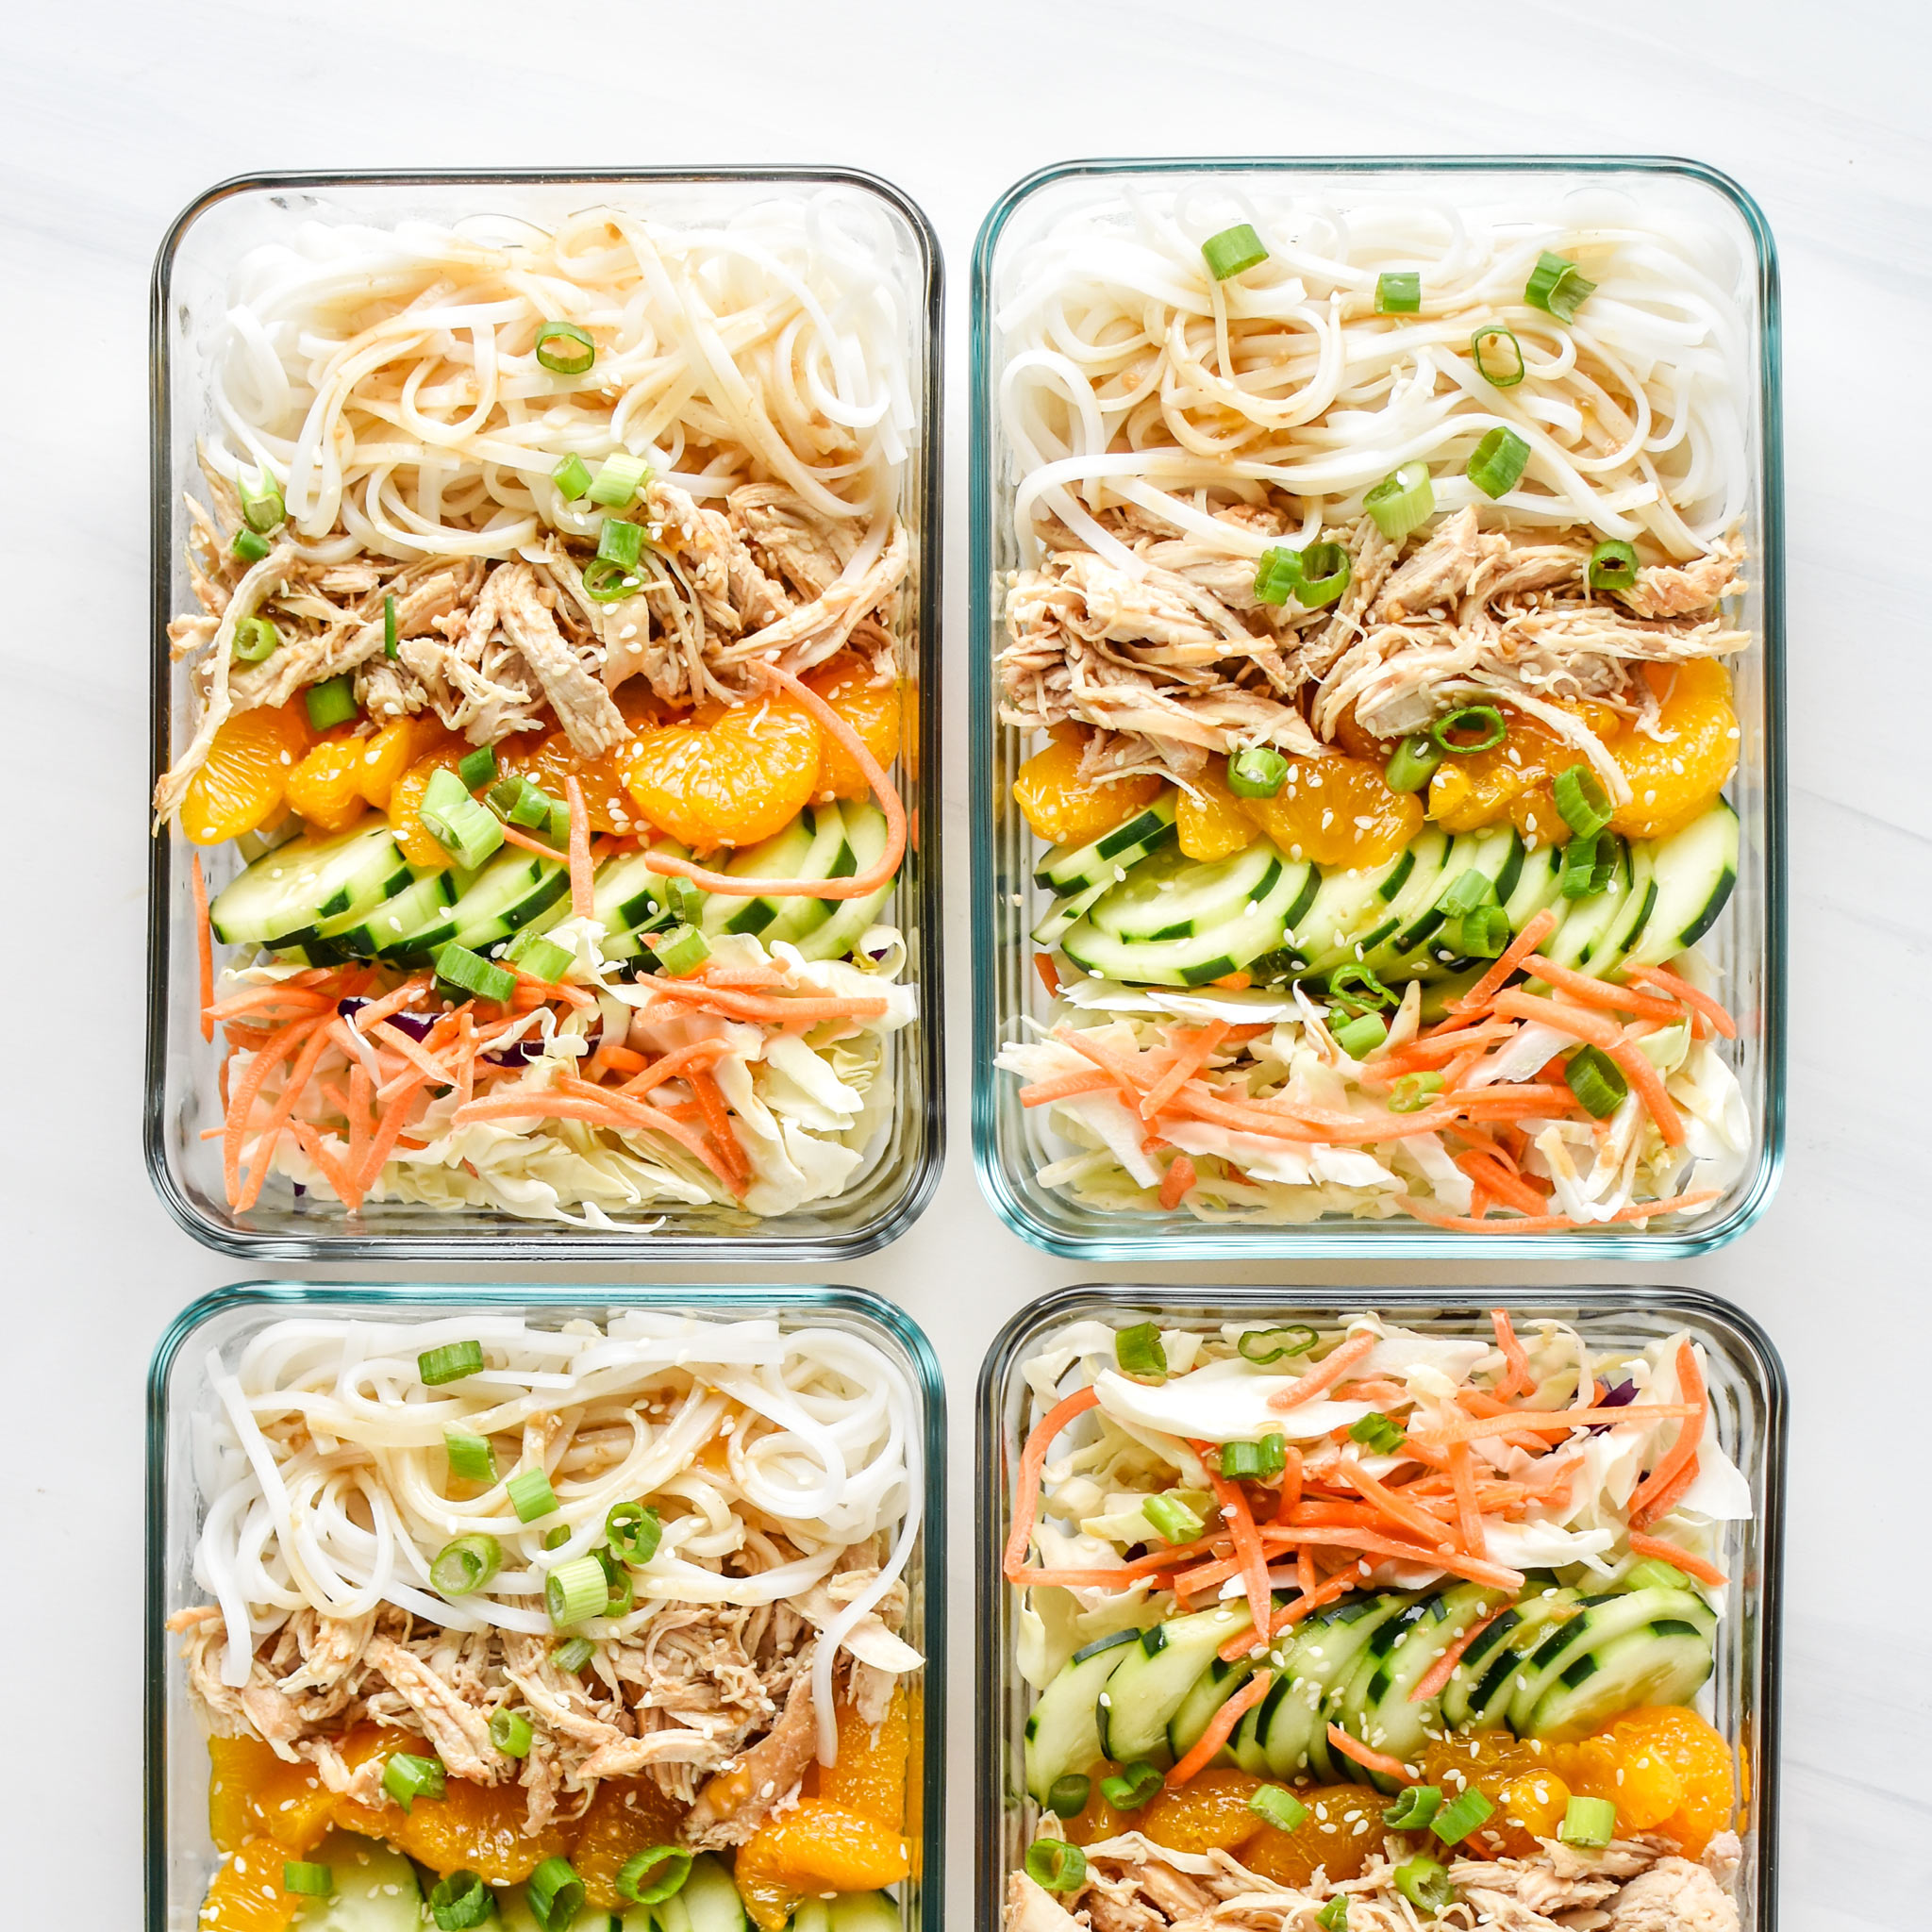 Sesame chicken Cold Rice Noodle Salad Lunches from above in meal prep containers